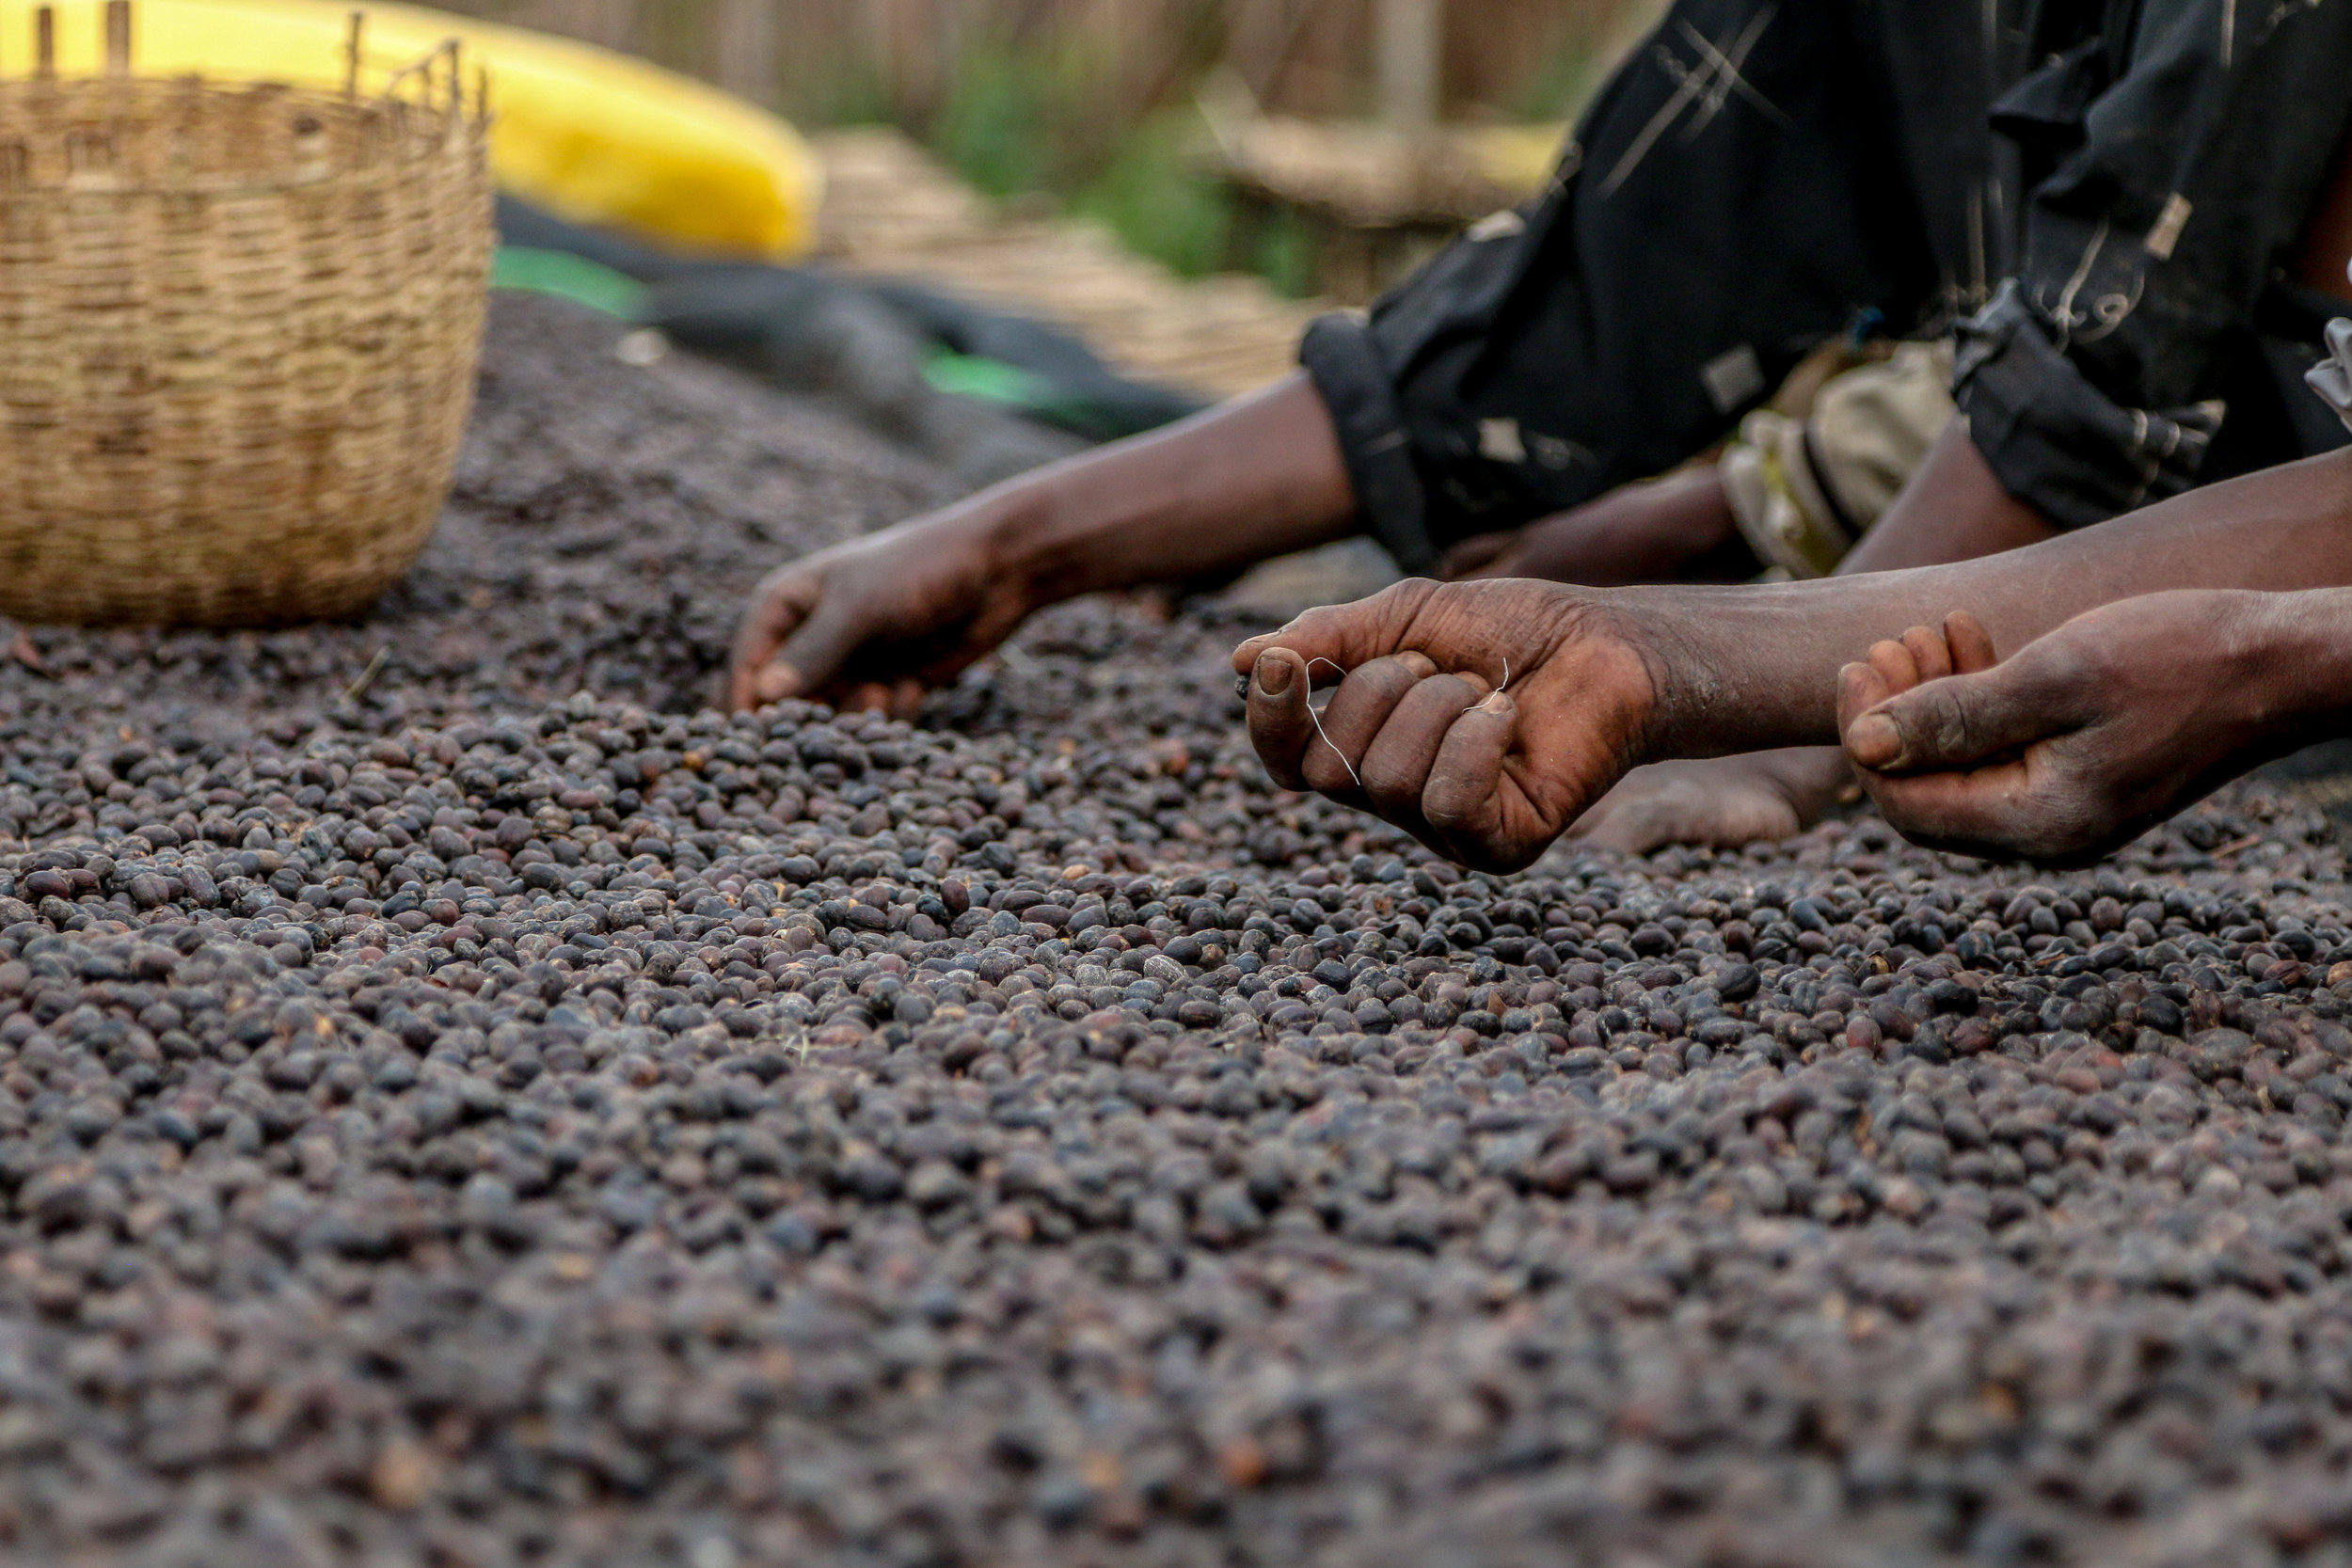 A picture of the natural process in Ethiopia, courtesy of Cafe Imports.